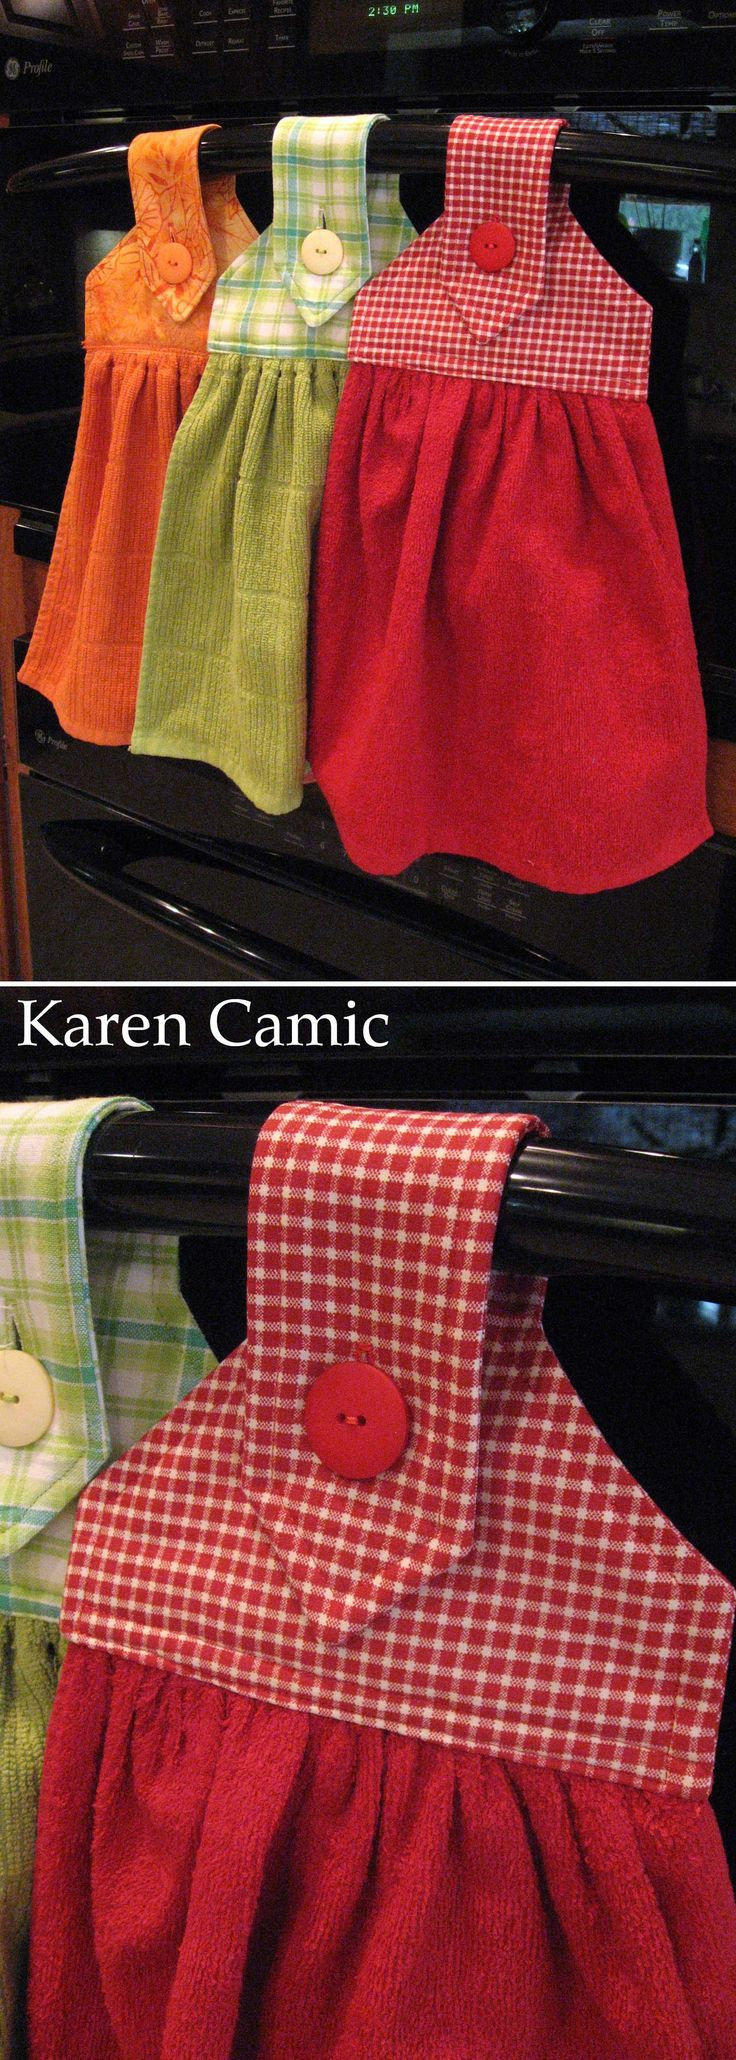 Oven Hand Towels... link for the pattern: http://kleiosbelly.wordpress.com/2010/01/04/christmas-prezzies-6-1-for-you/